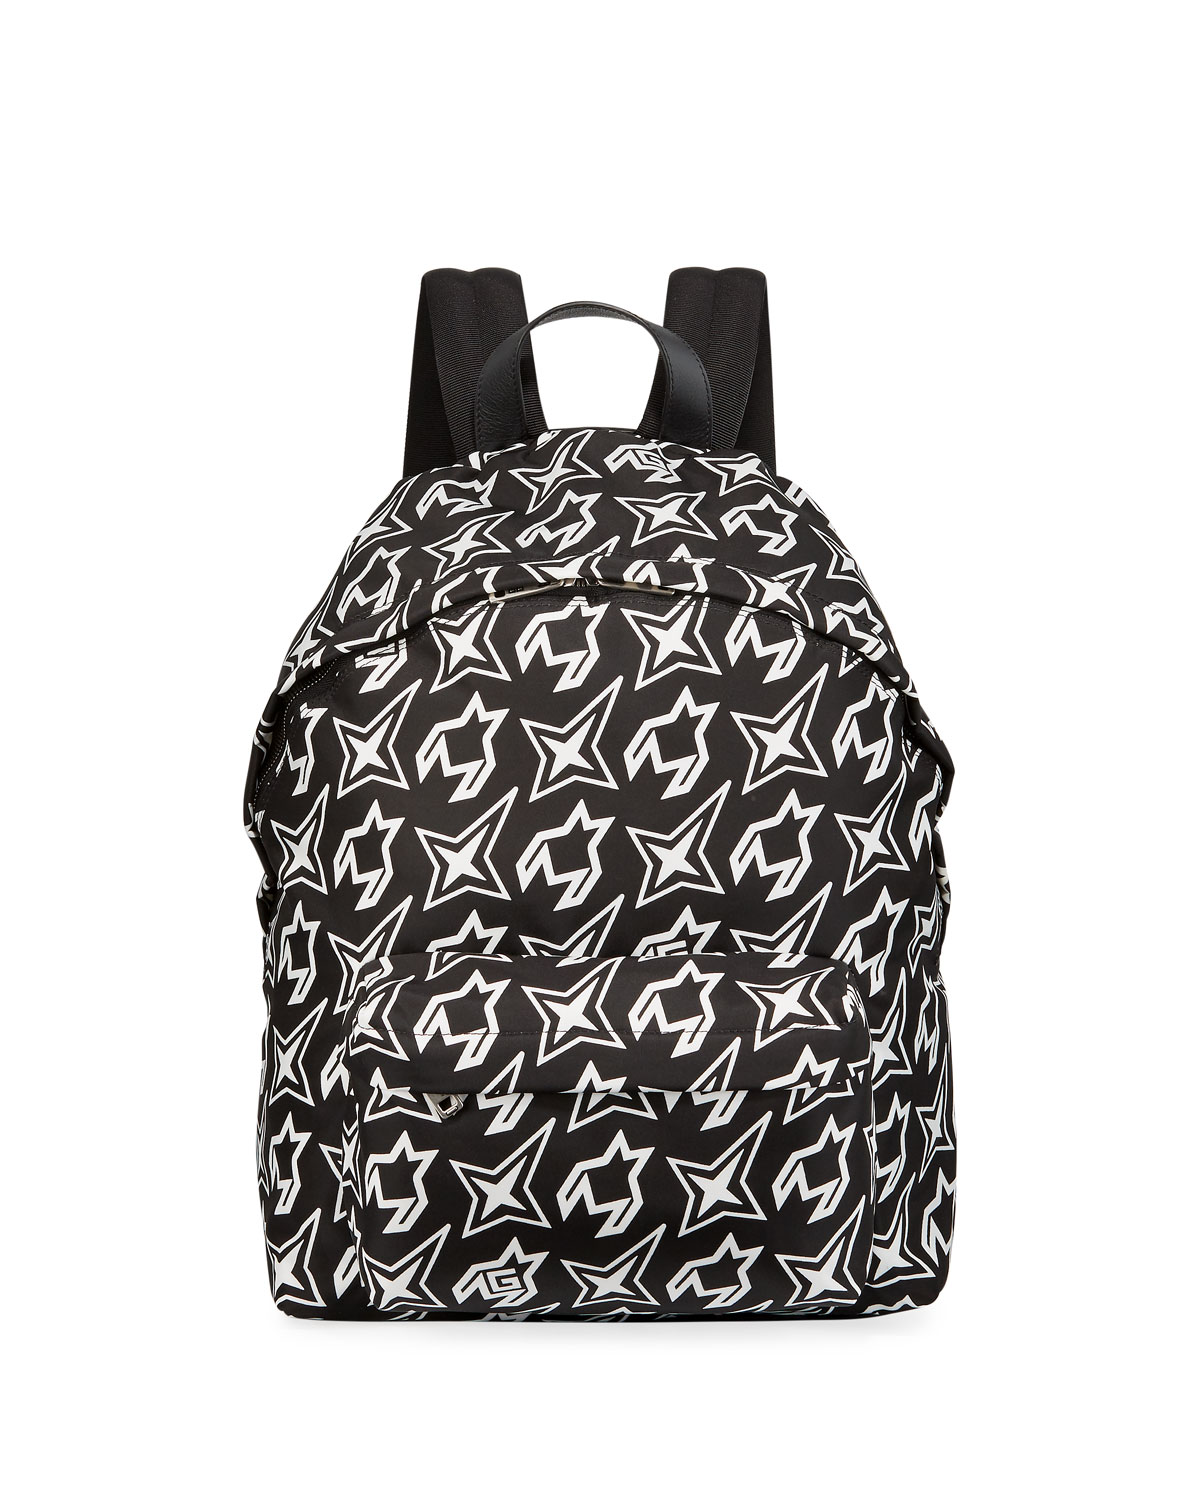 8fd35236bdeb Givenchy Men s Cosmic Printed Nylon Backpack